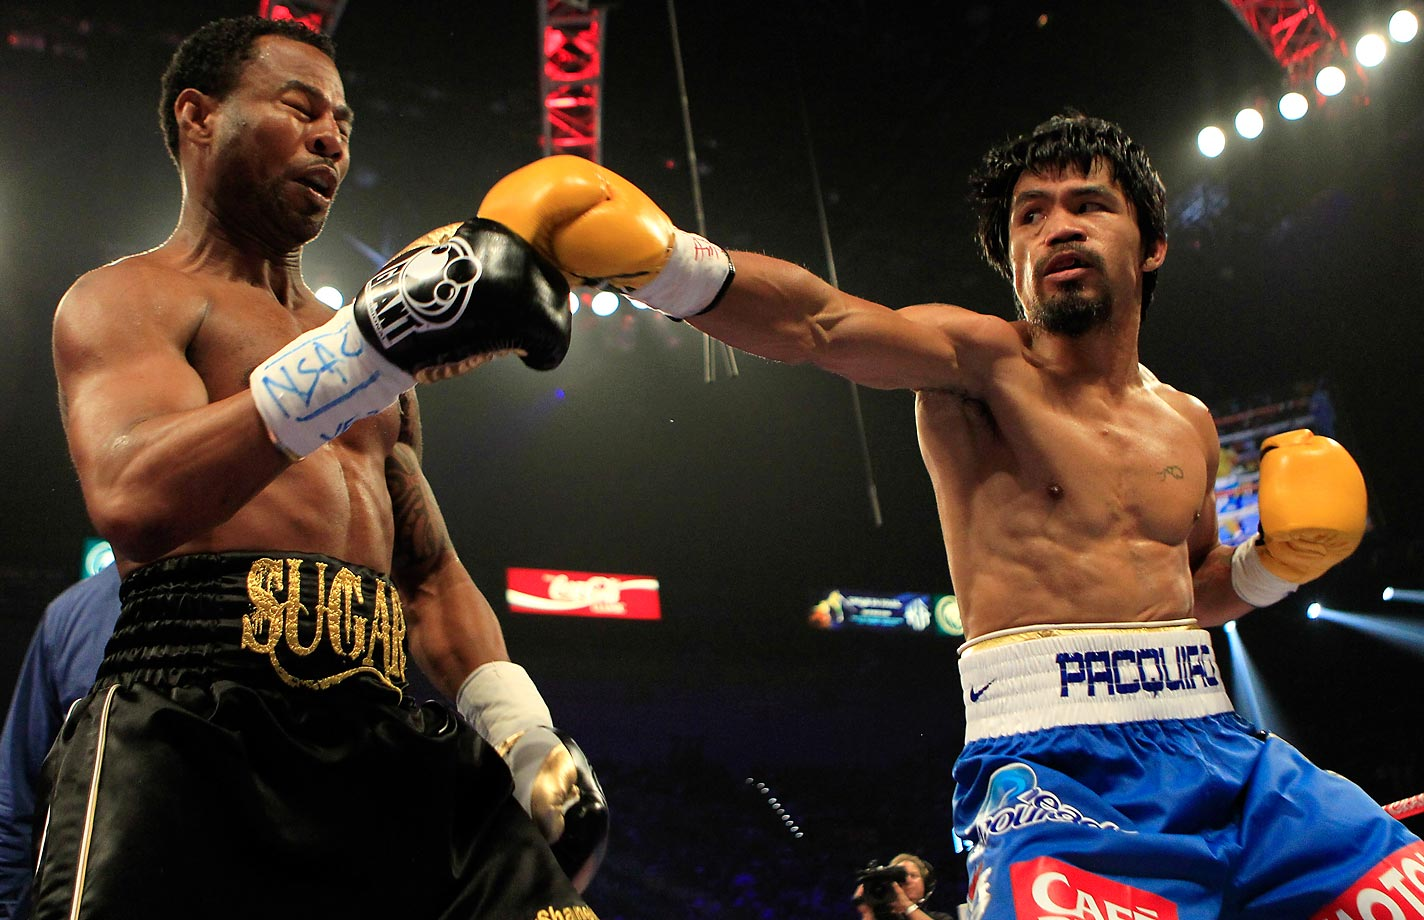 Pacquiao wasn't up to his near-perfect standard, but he still dominated the 39-year-old Mosley over 12 rounds for a unanimous-decision win. Trainer Freddie Roach said Pacquiao, who was involved in a fight-day fender bender, was beset by leg cramps during the fight. Mosley suffered just the third knockdown of his career in the third round and, by the end of an uninspiring fight, was being booed by the Vegas crowd.